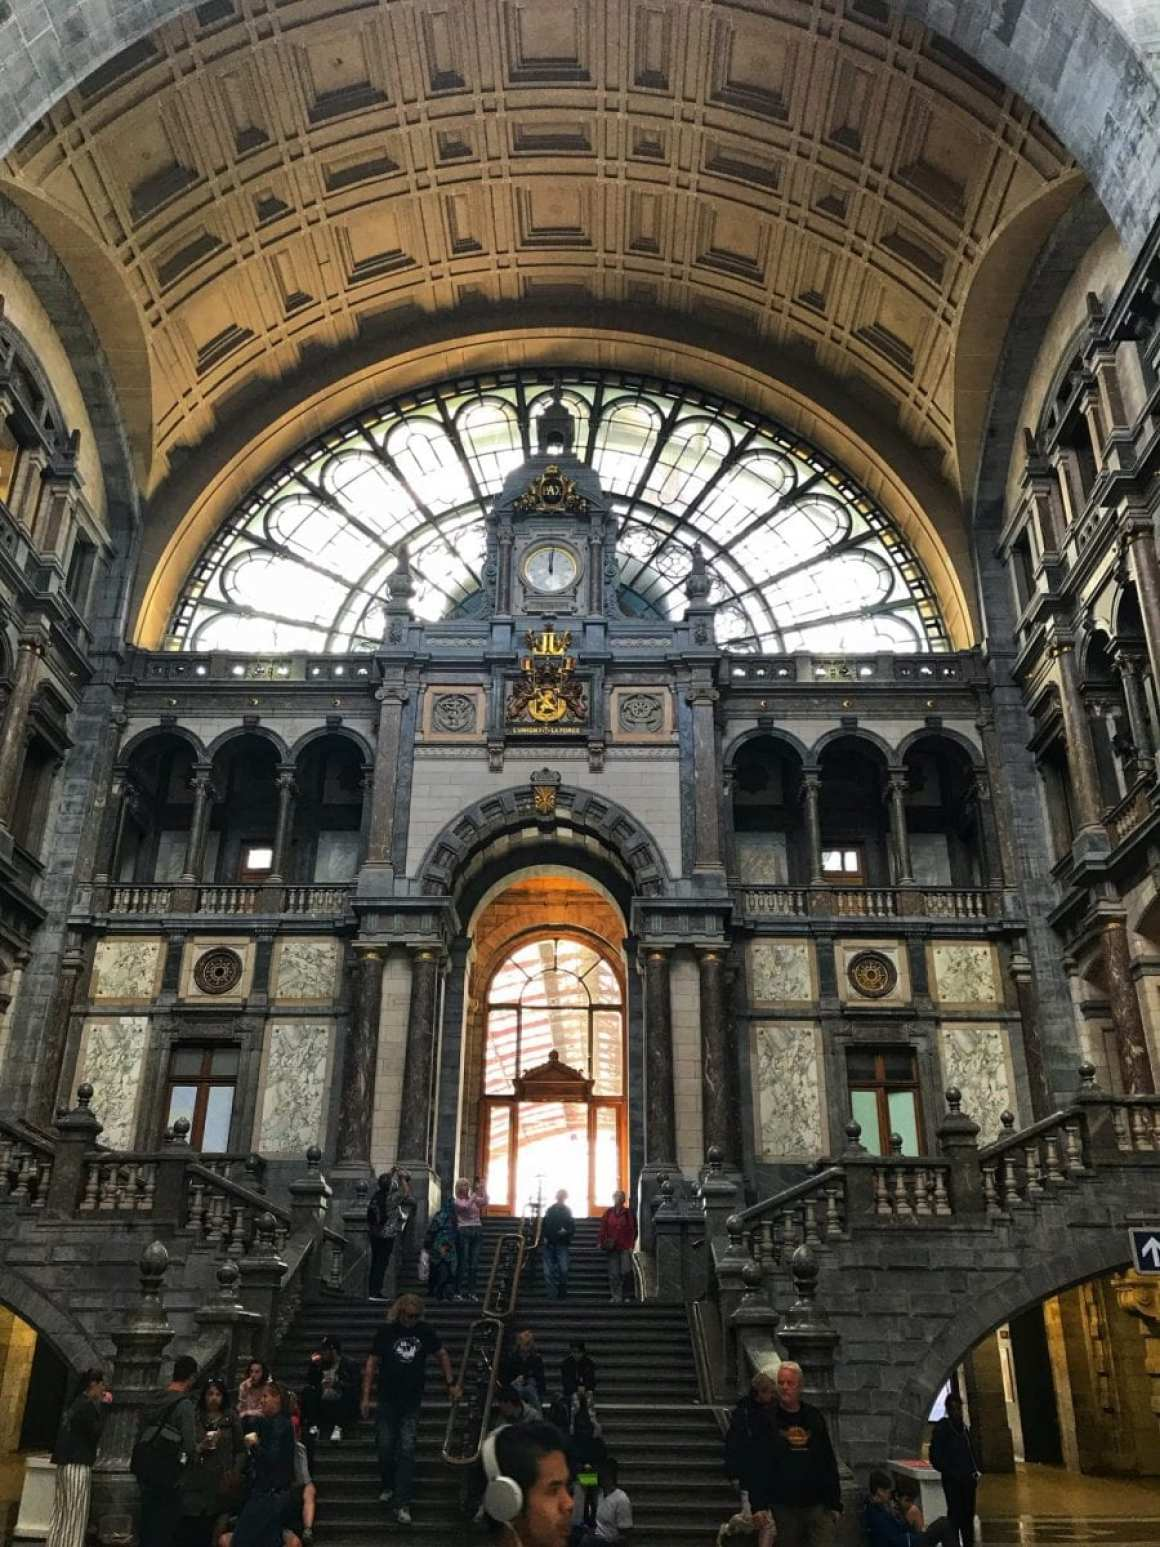 The amazing Antwerp Central Station